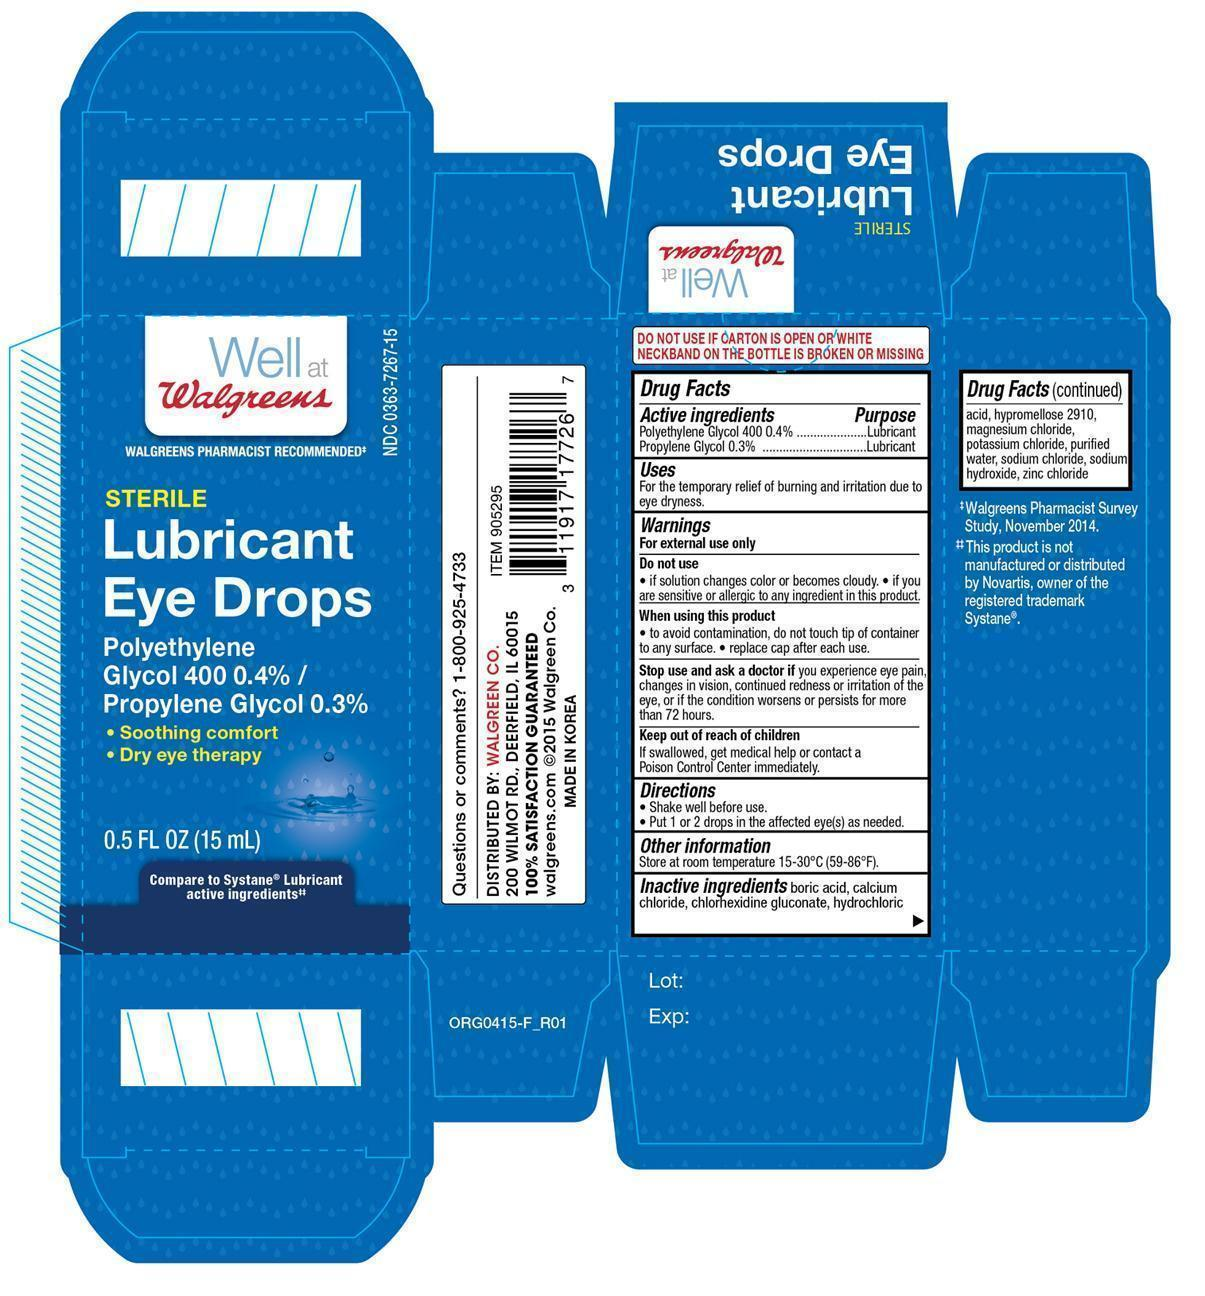 Riluzole Tablet, Film Coated [American Health Packaging]